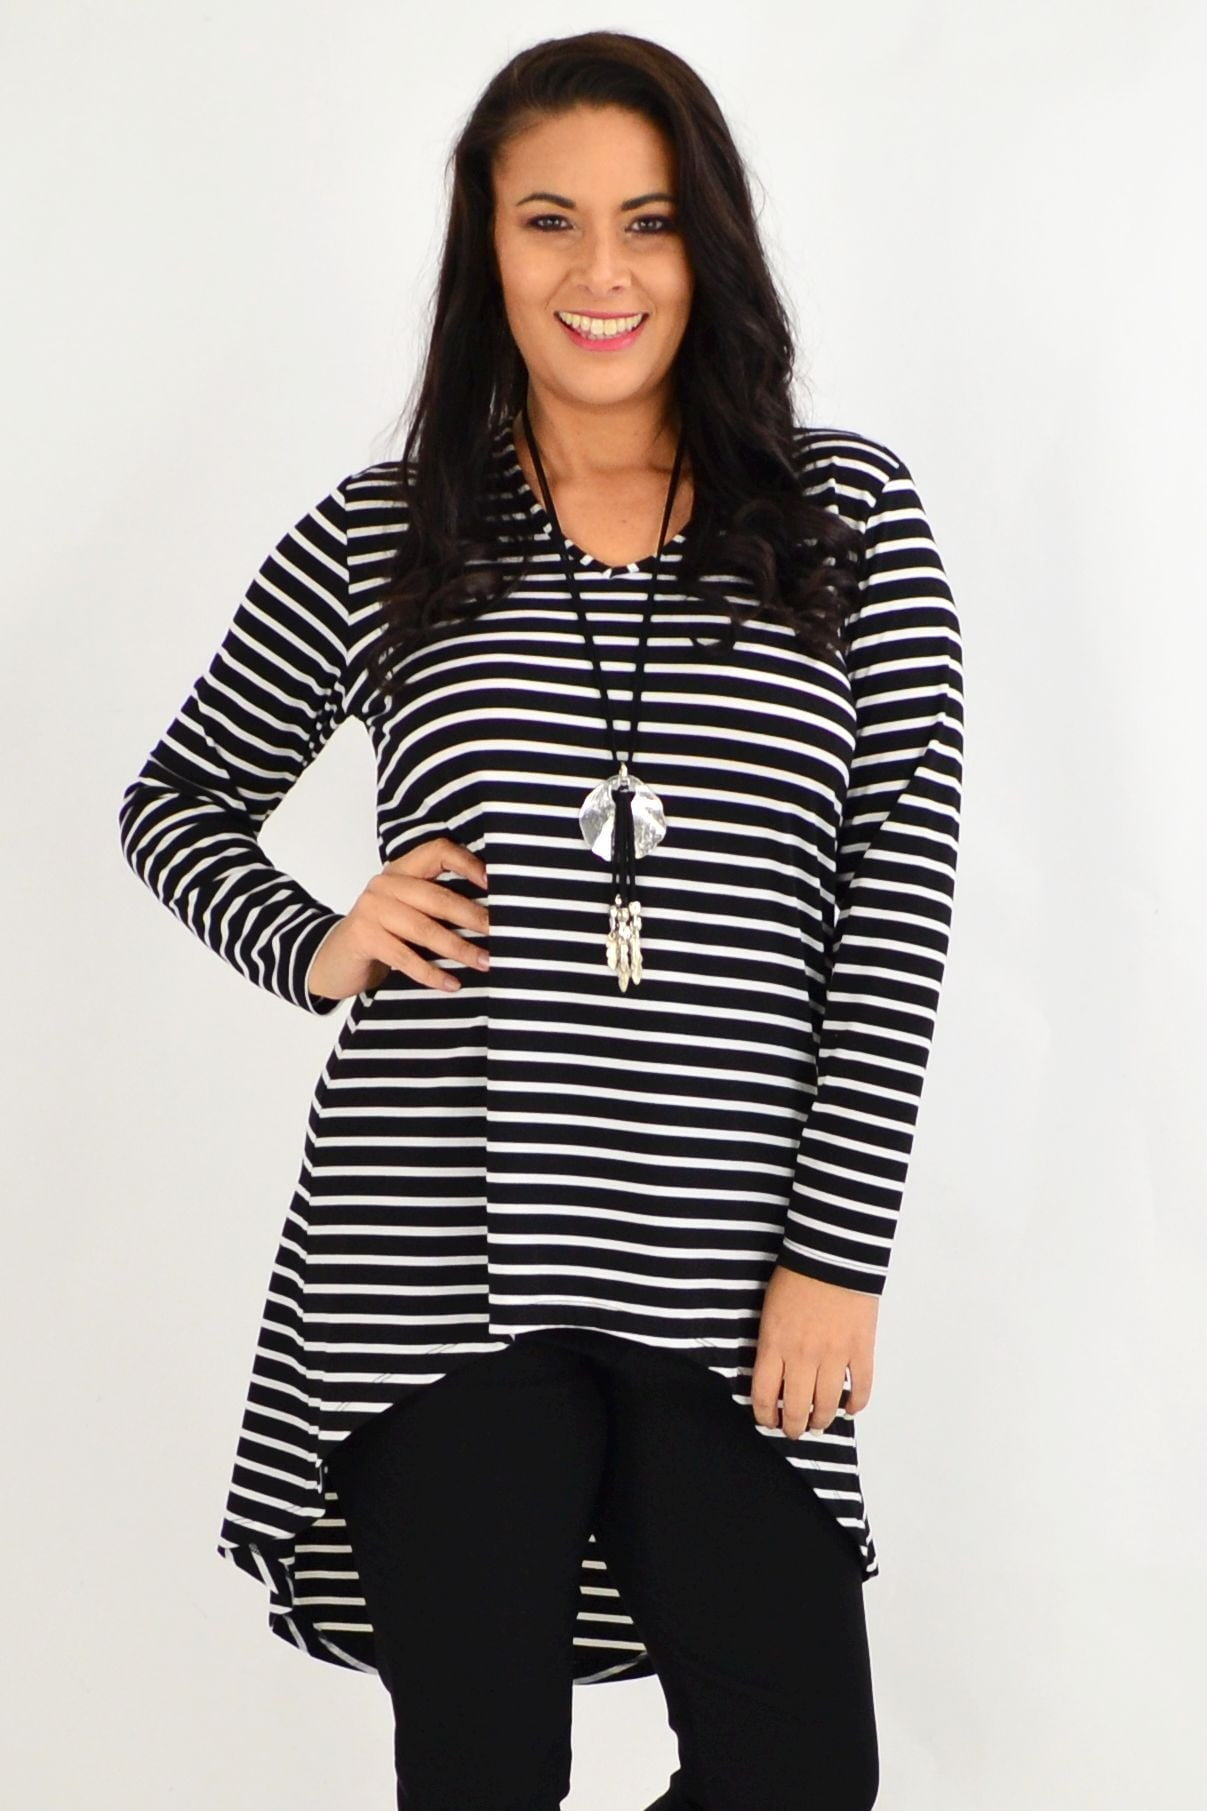 Vee Swing Stripe Tunic Top by Cordelia St | I Love Tunics | Tunic Tops | Tunic | Tunic Dresses  | womens clothing online